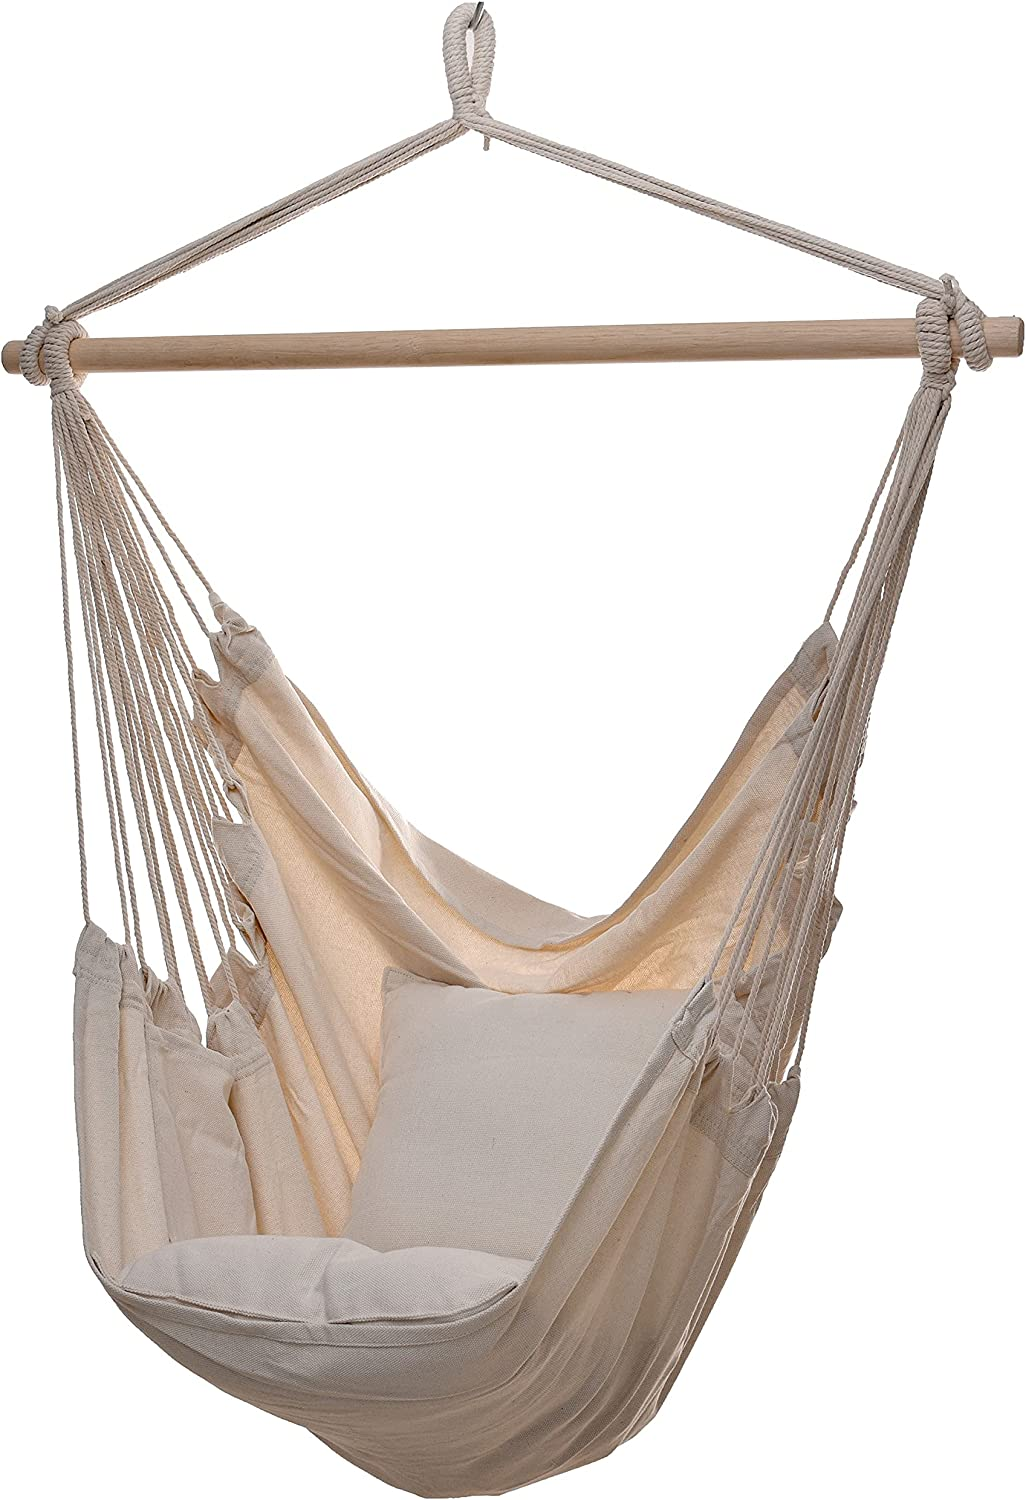 Project One Hanging Rope Hammock Chair, Hanging Rope Swing Seat with 2 Pillows, Carrying Bag, and Hardware Kit Perfect for Outdoor/Indoor Yard Deck Patio and Garden, 300 Pound Capacity (Beige)